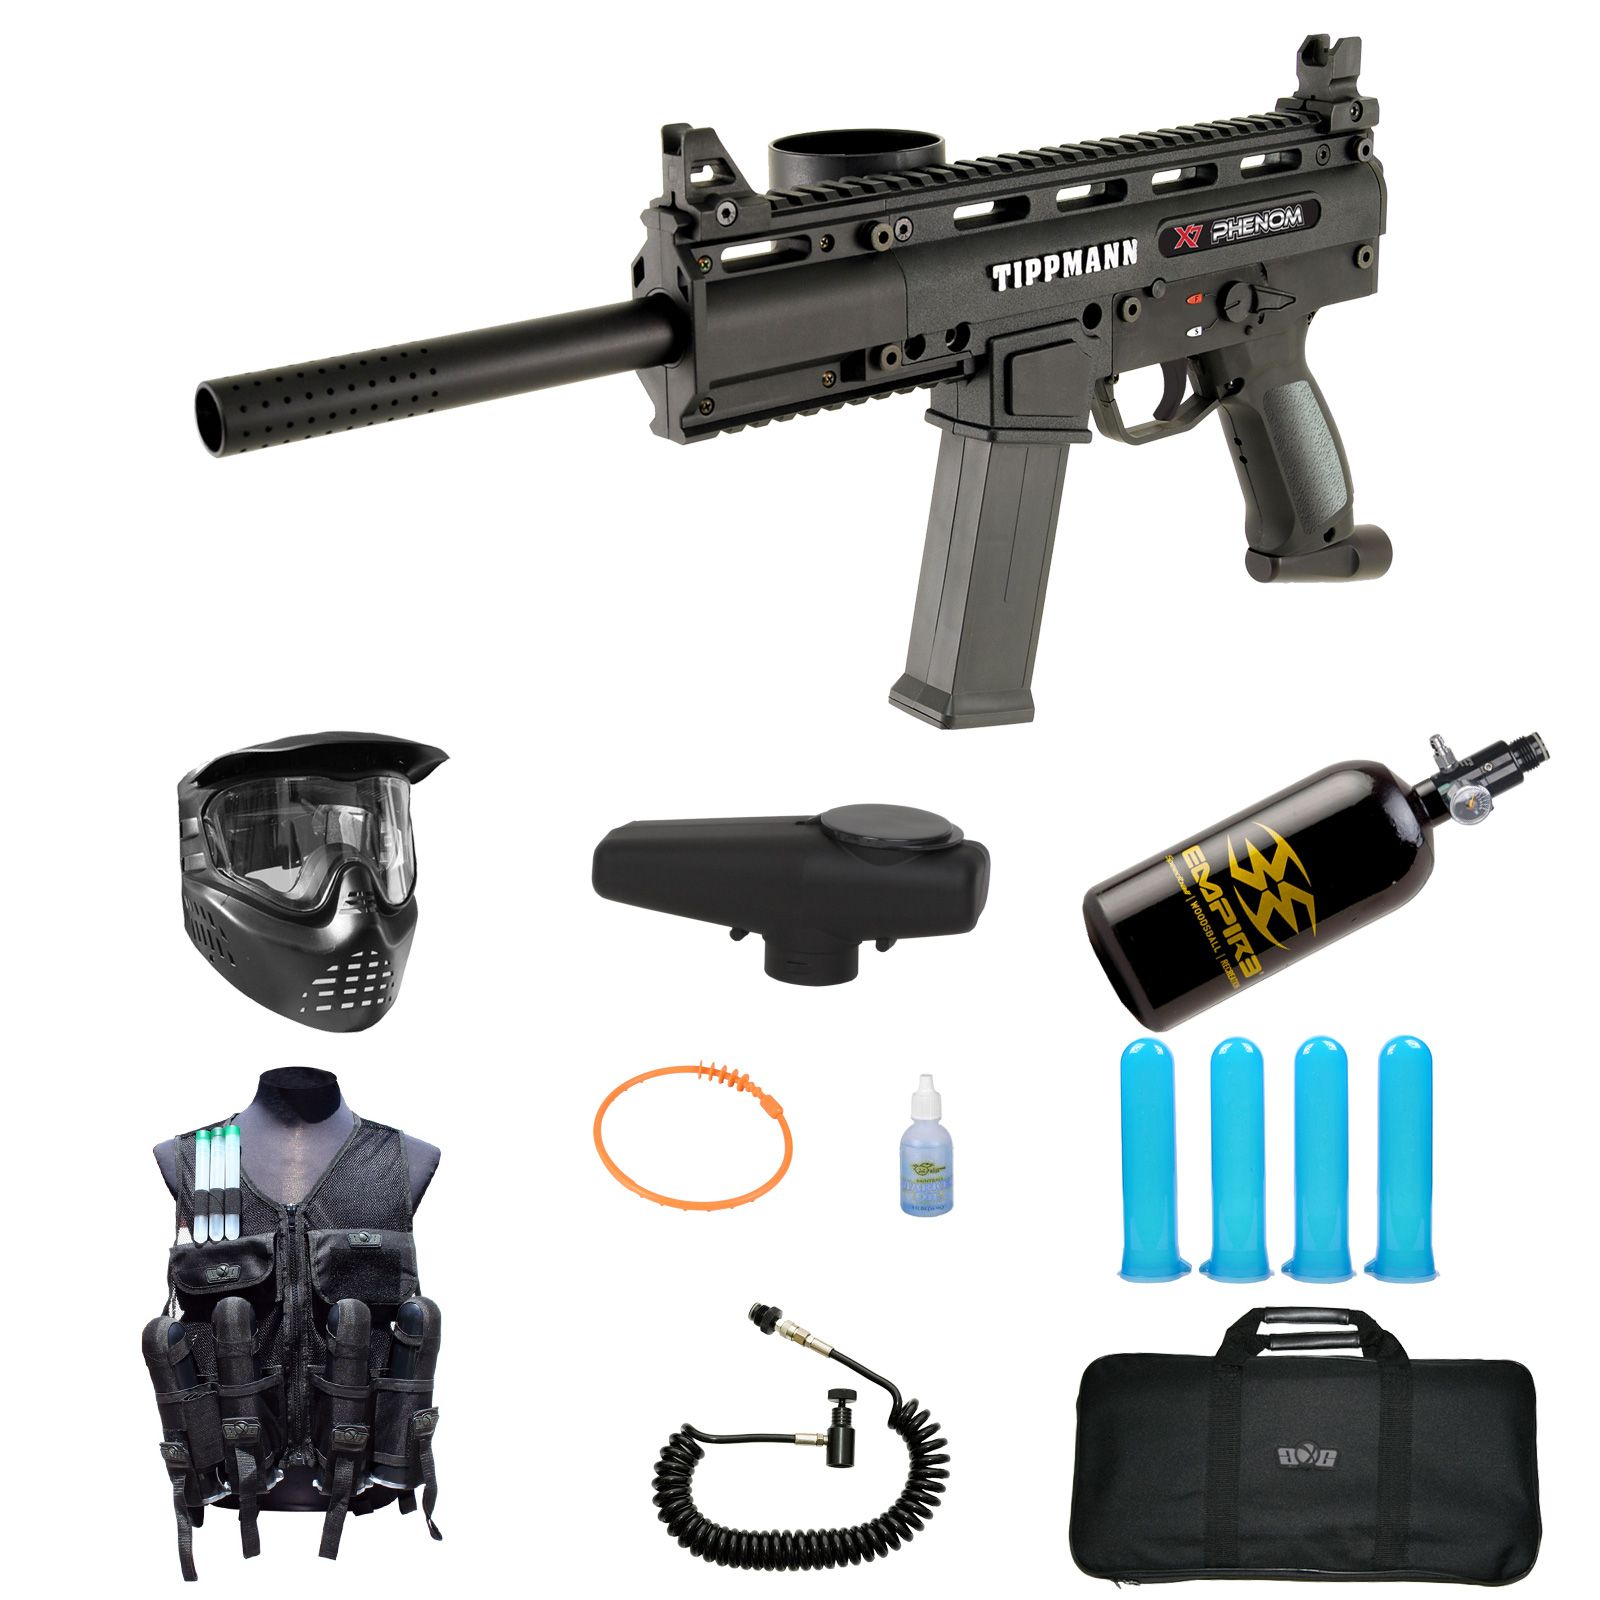 WaveToGo the professional Paintball shop who provides